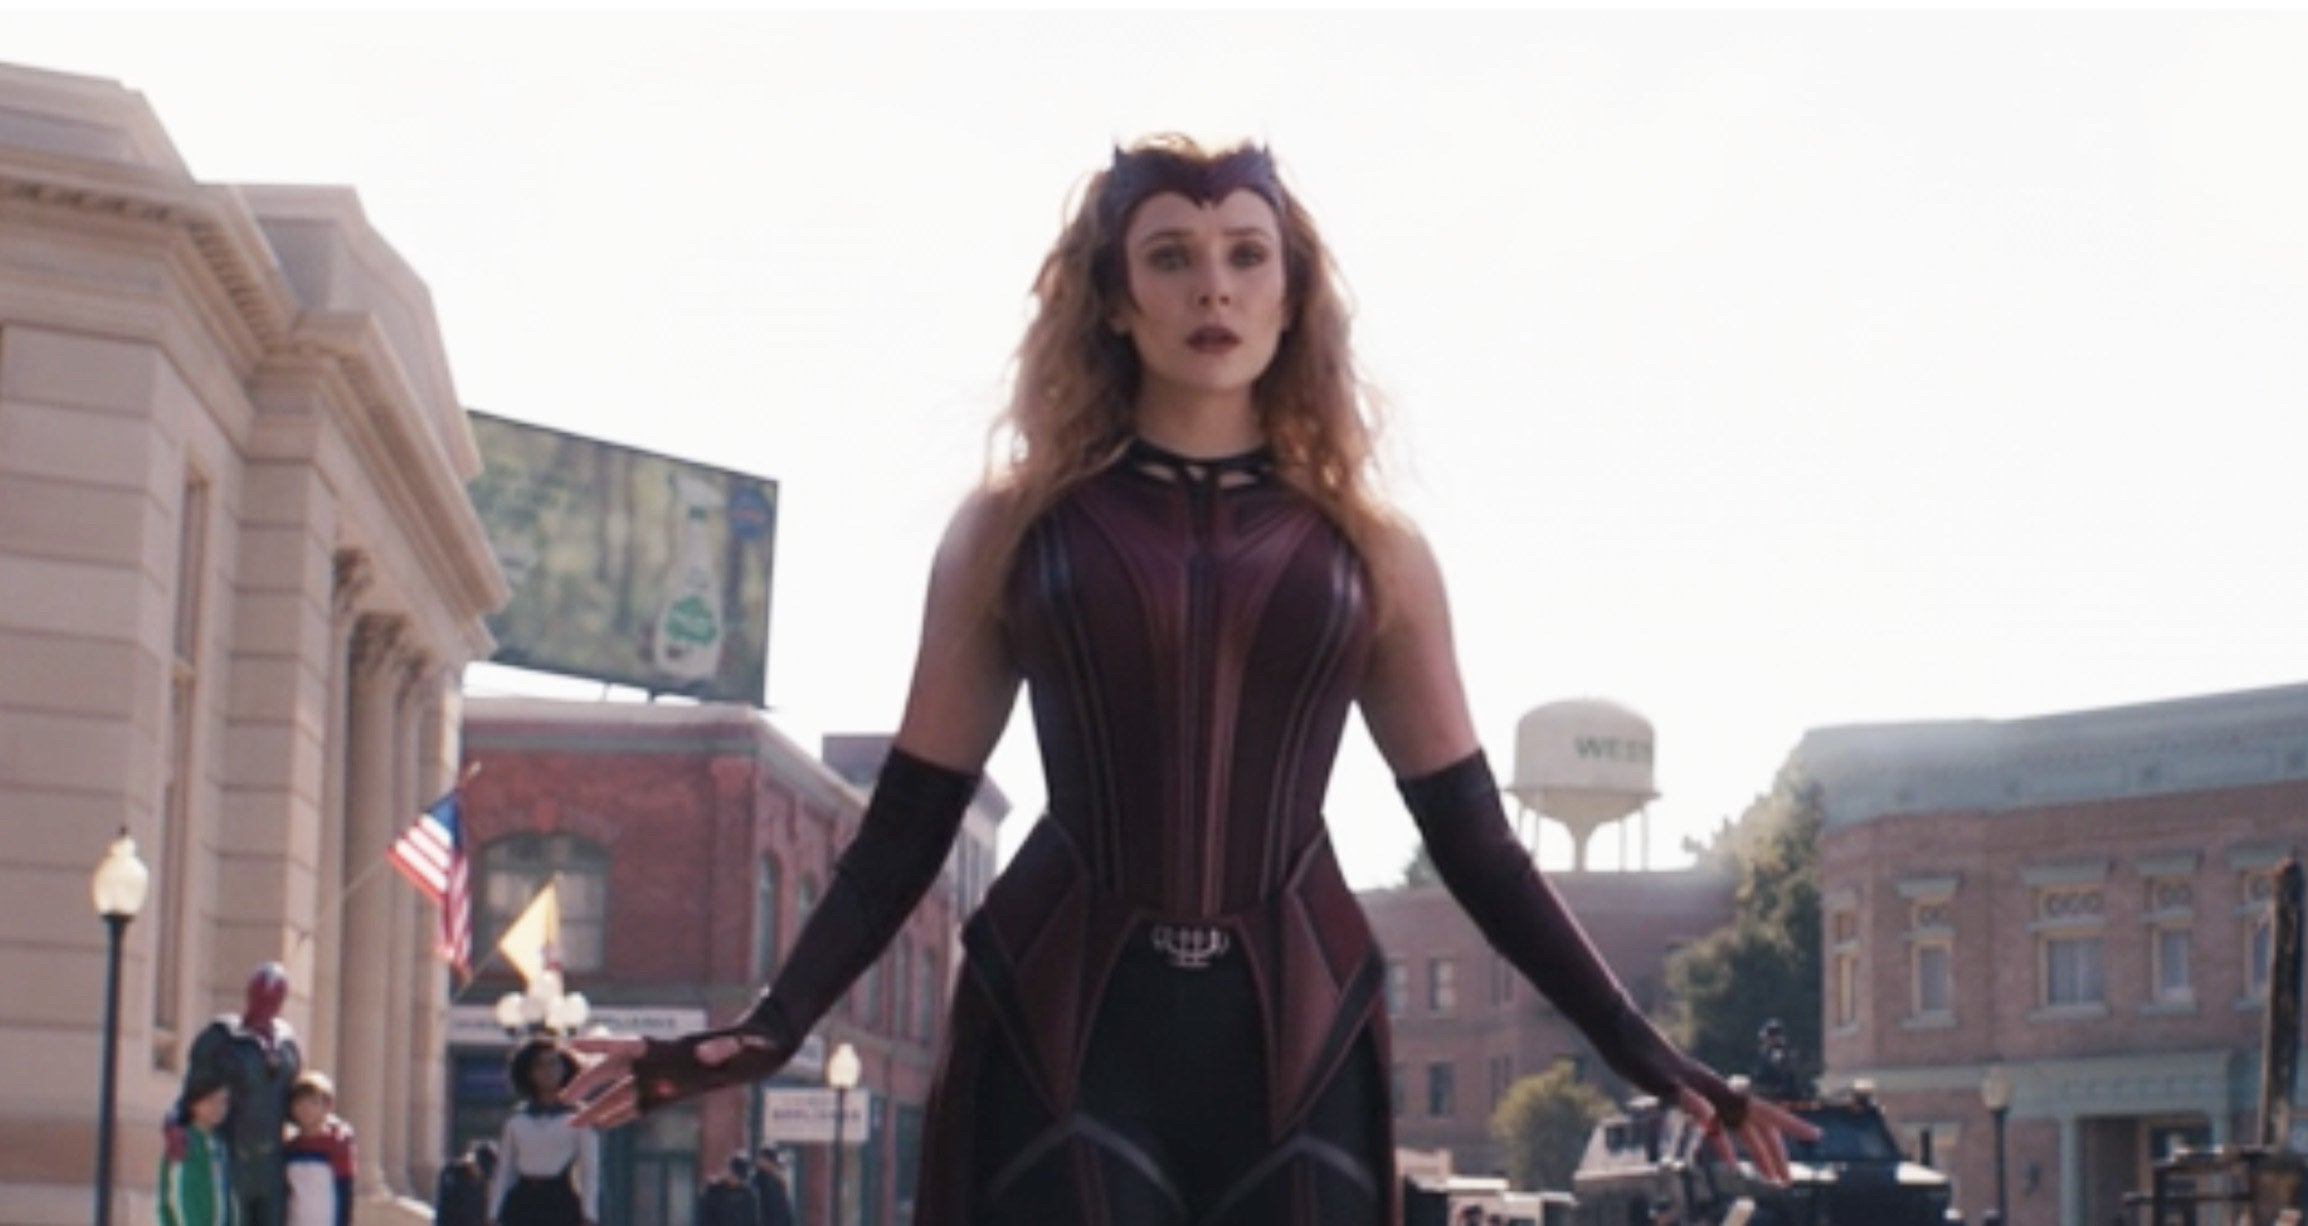 Wanda wears a maroon, blue, and gray uniform